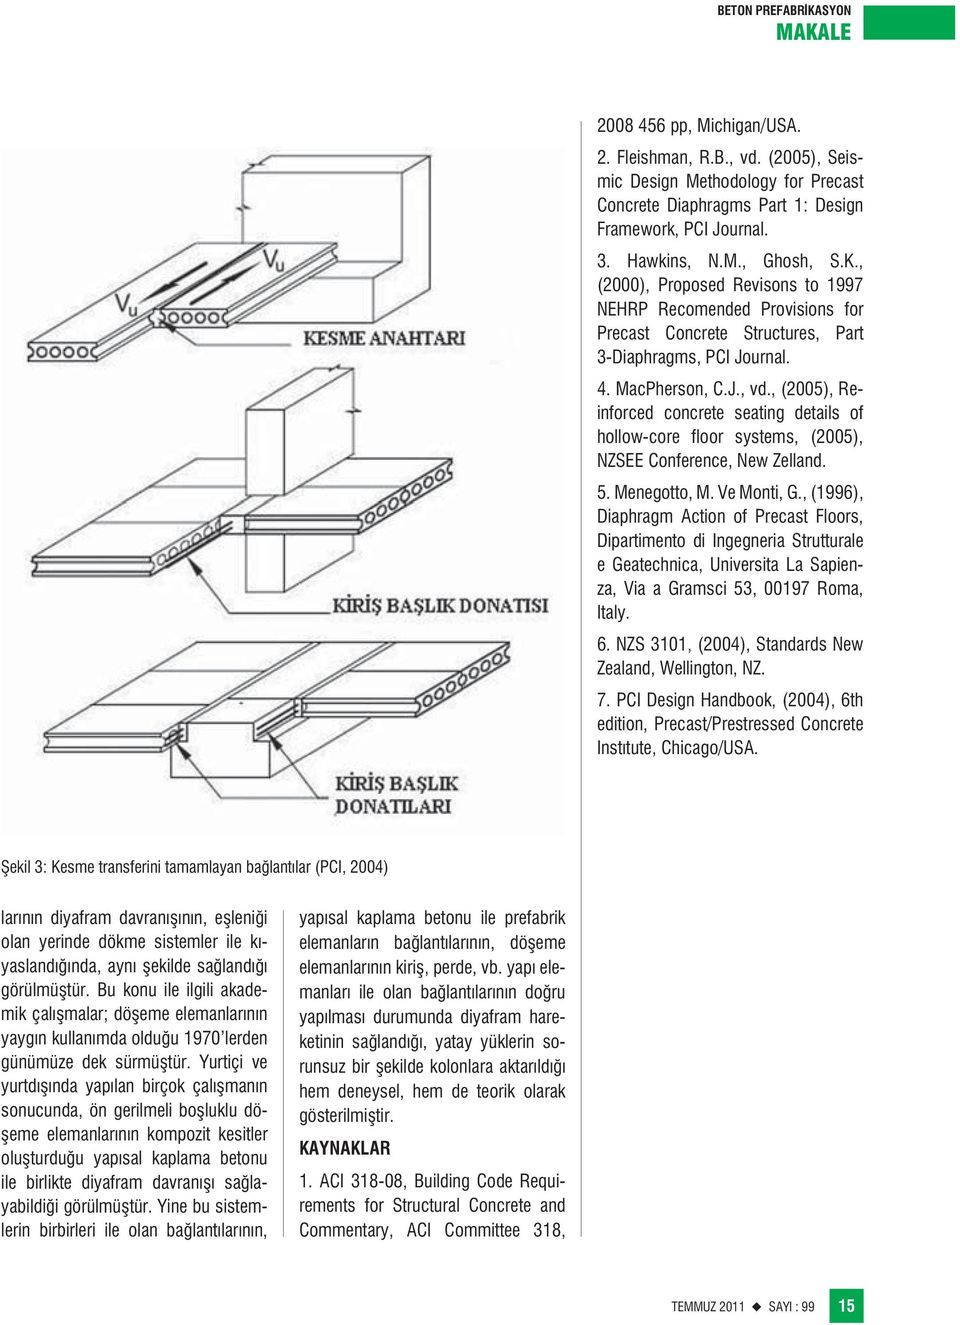 , (2005), Reinforced concrete seating details of hollow-core floor systems, (2005), NZSEE Conference, New Zelland. 5. Menegotto, M. Ve Monti, G.